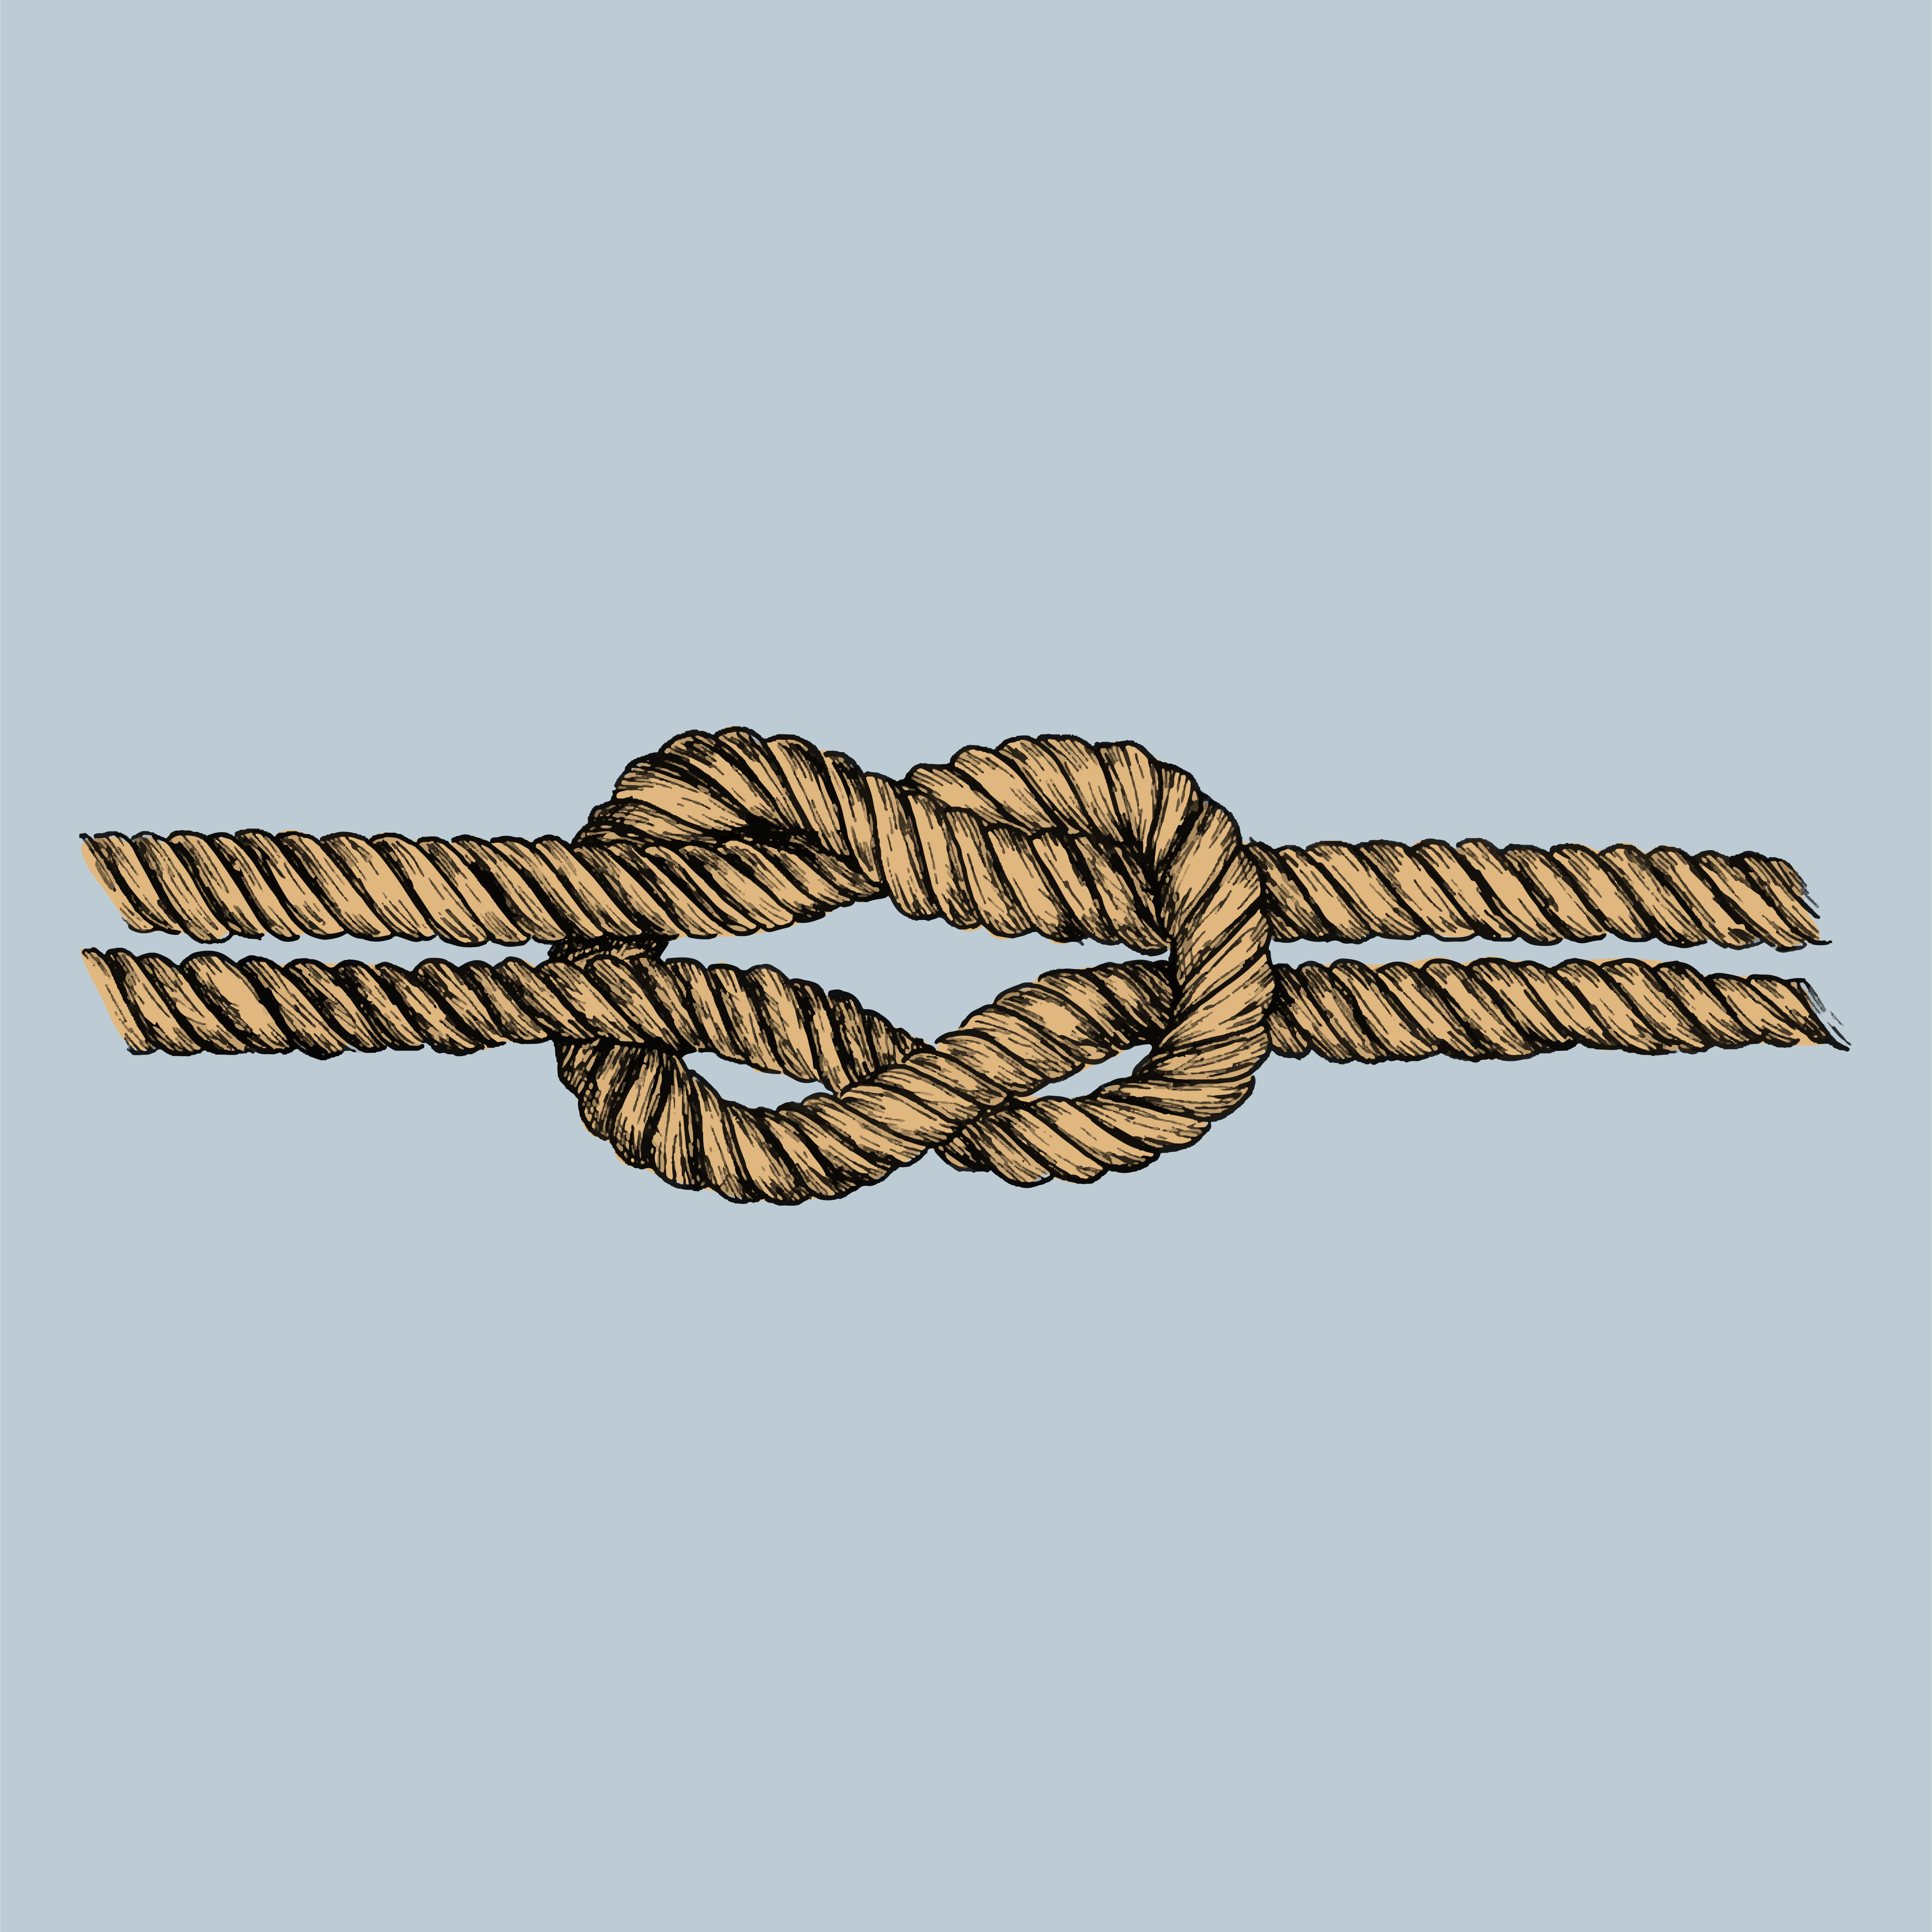 Hand drawn square knot - Download Free Vector Art, Stock Graphics & Images